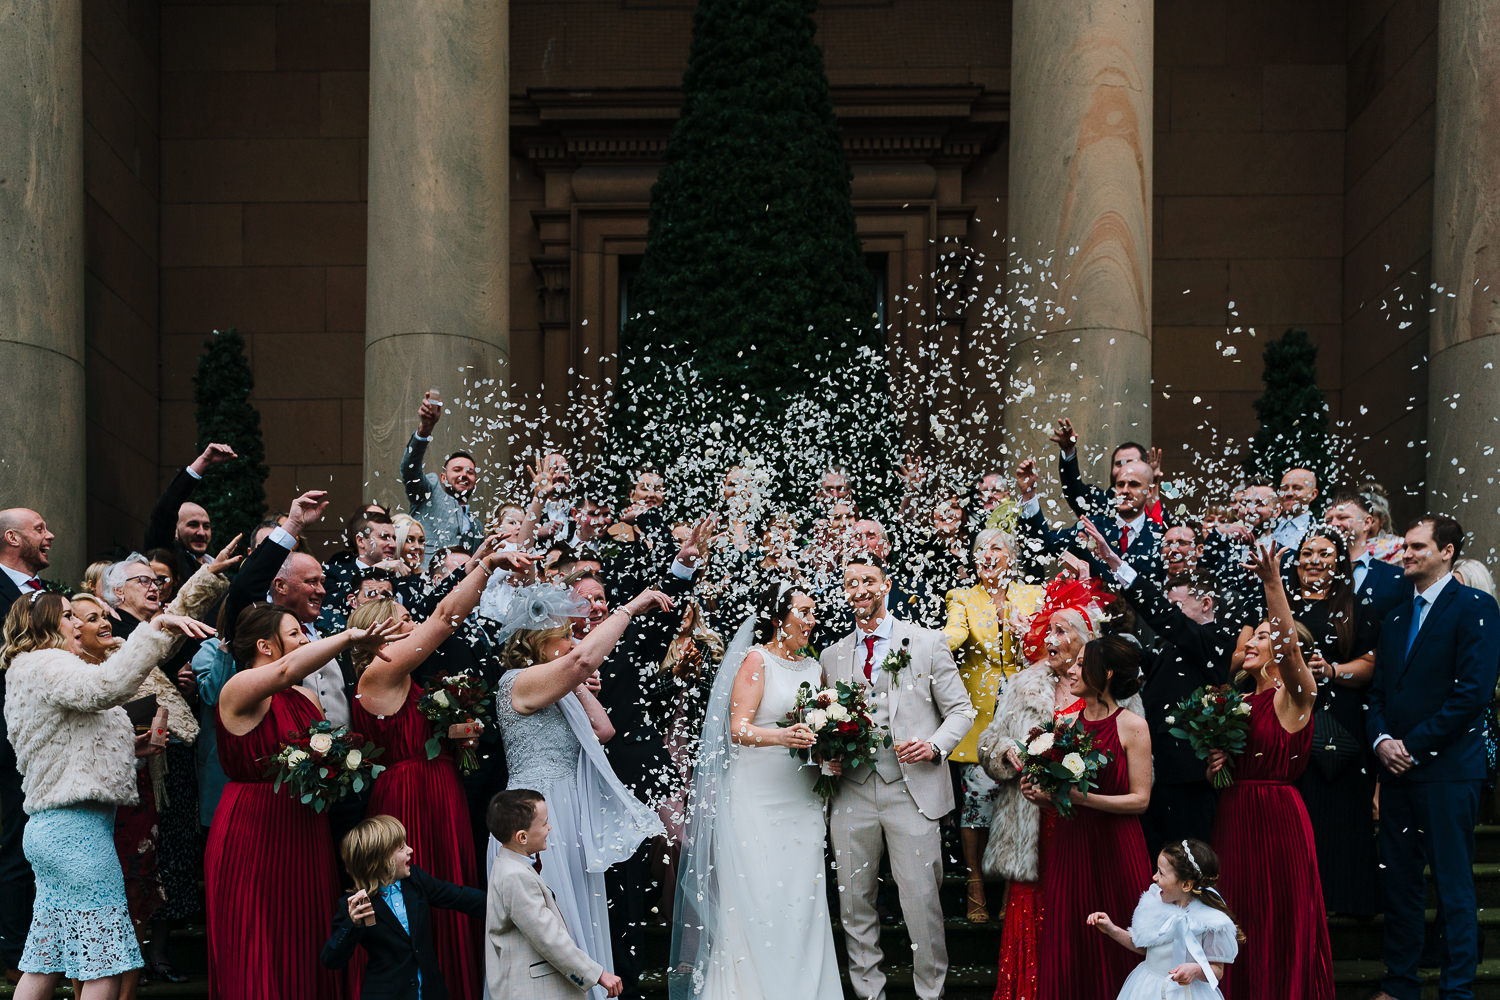 confetti photo outside the courthouse hotel in Knutsford